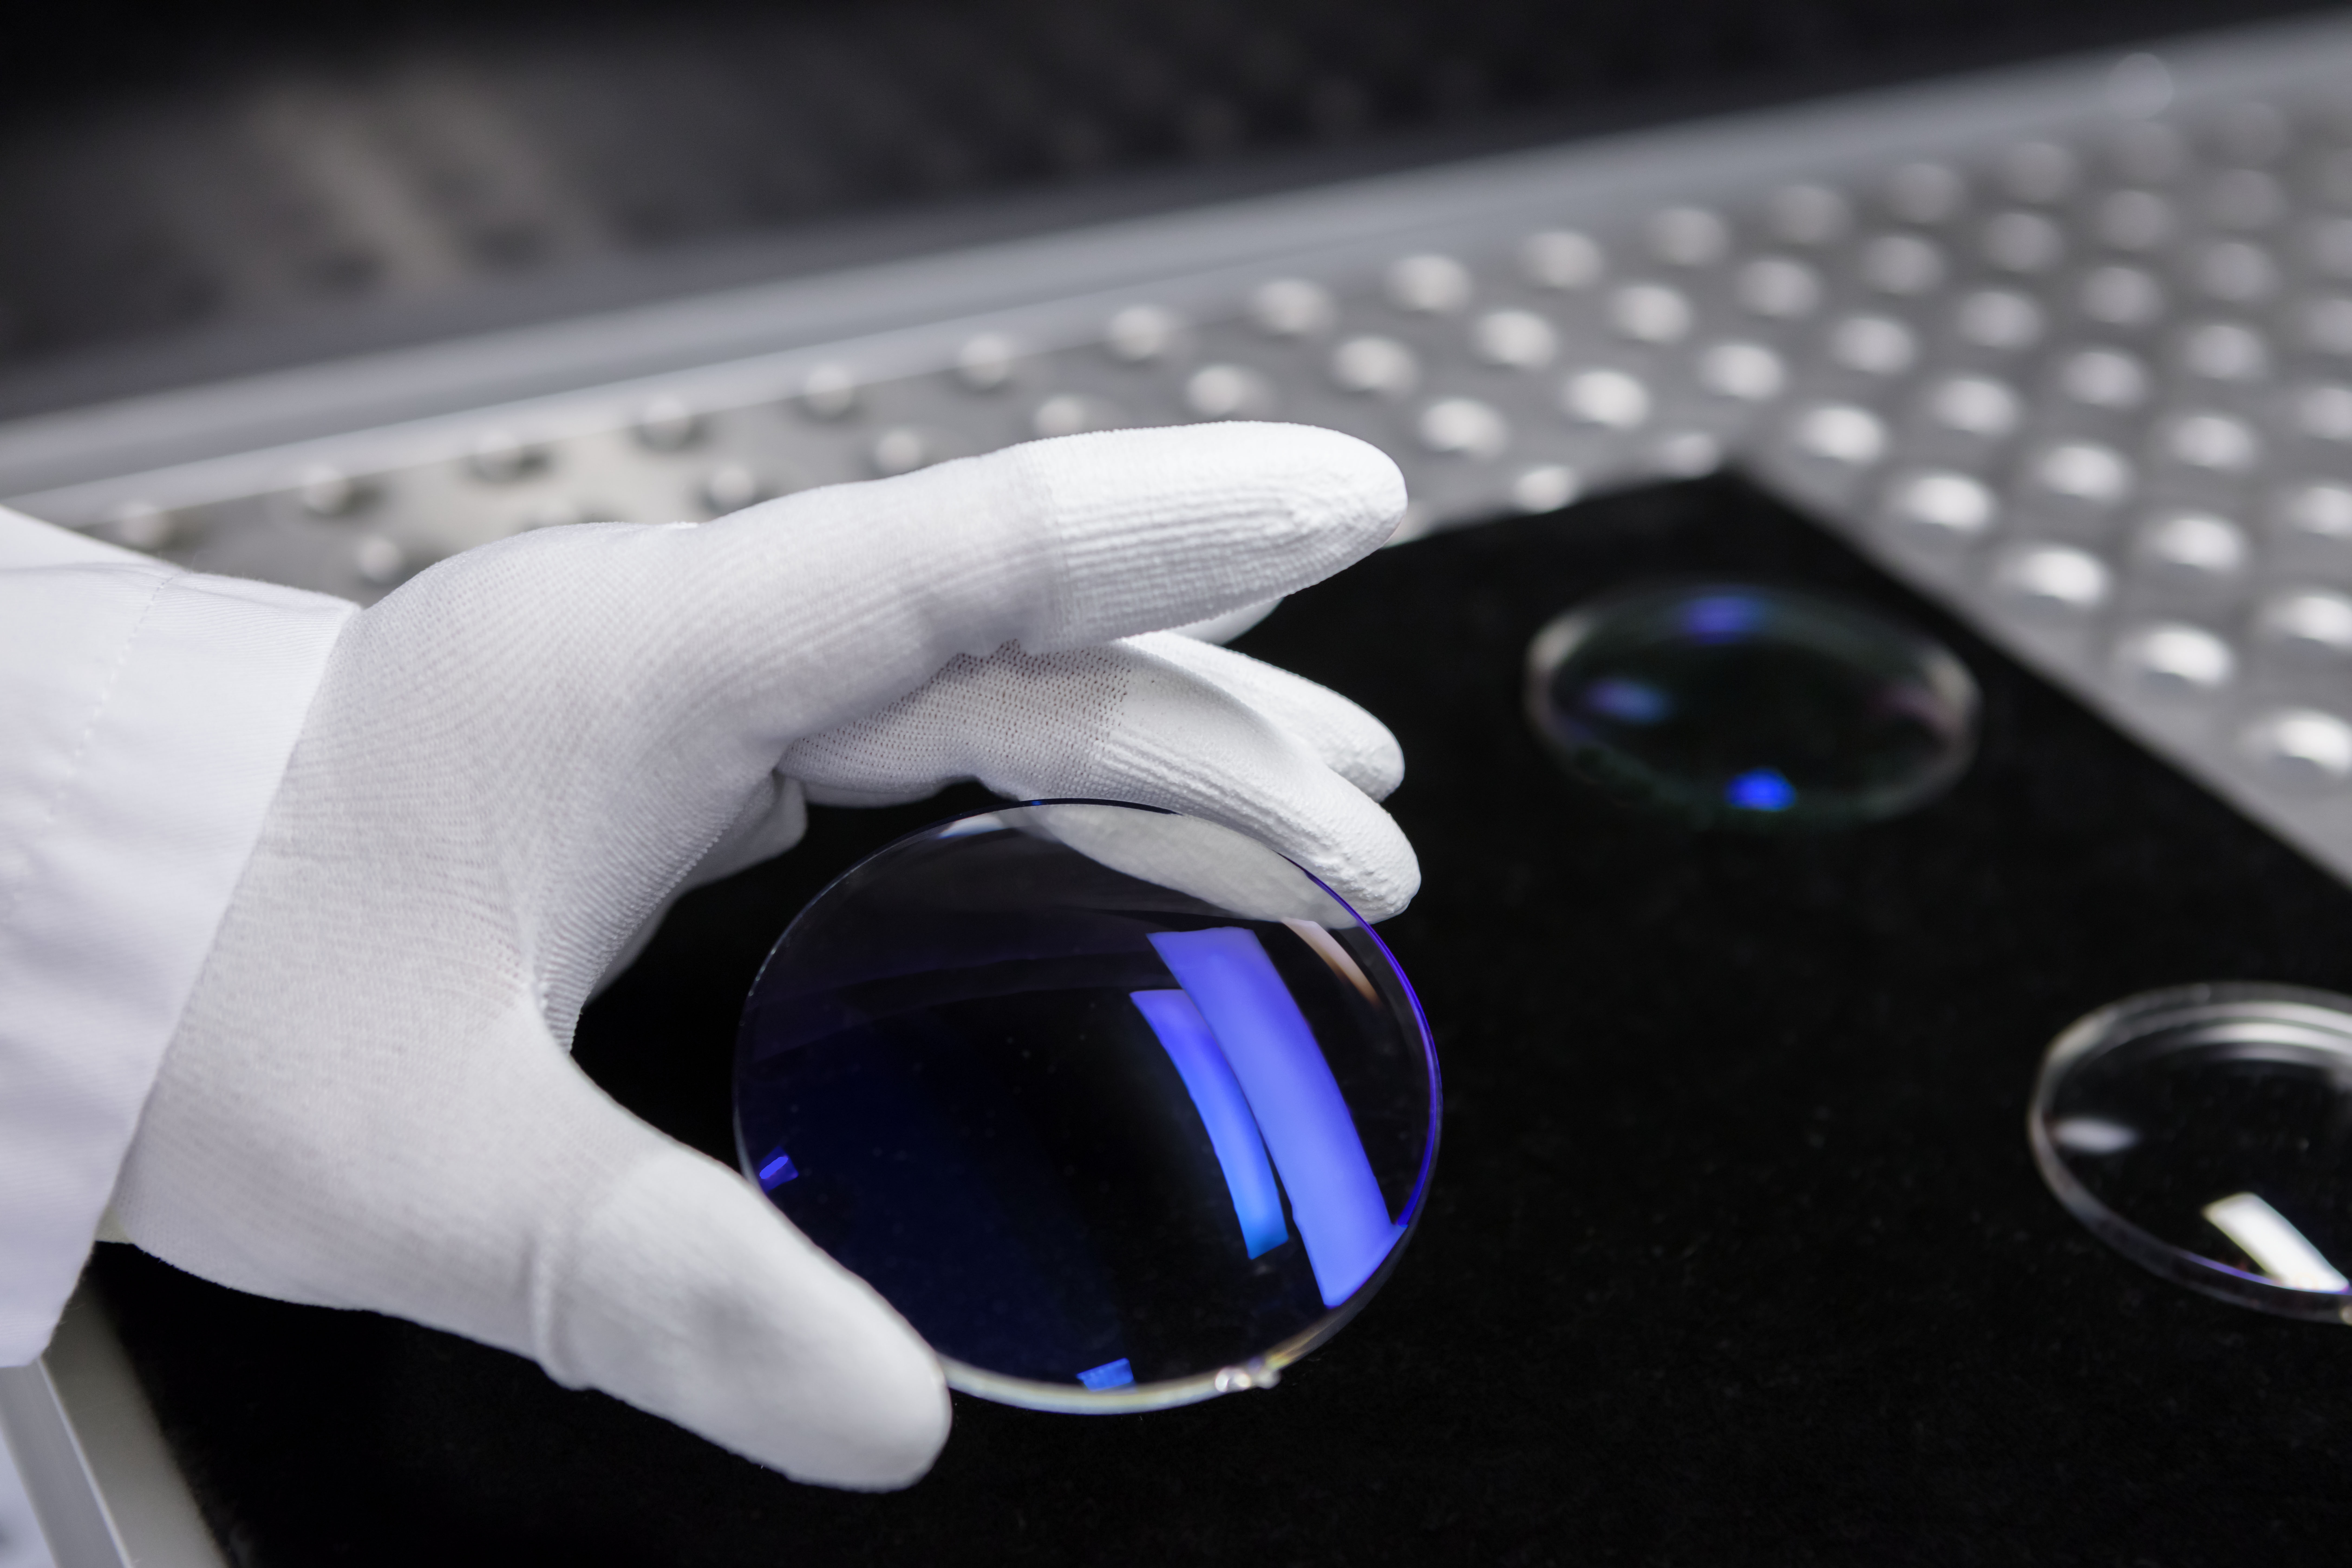 The blue reflex color of the ZEISS lenses is a unique characteristic made with Bühler coating technology.